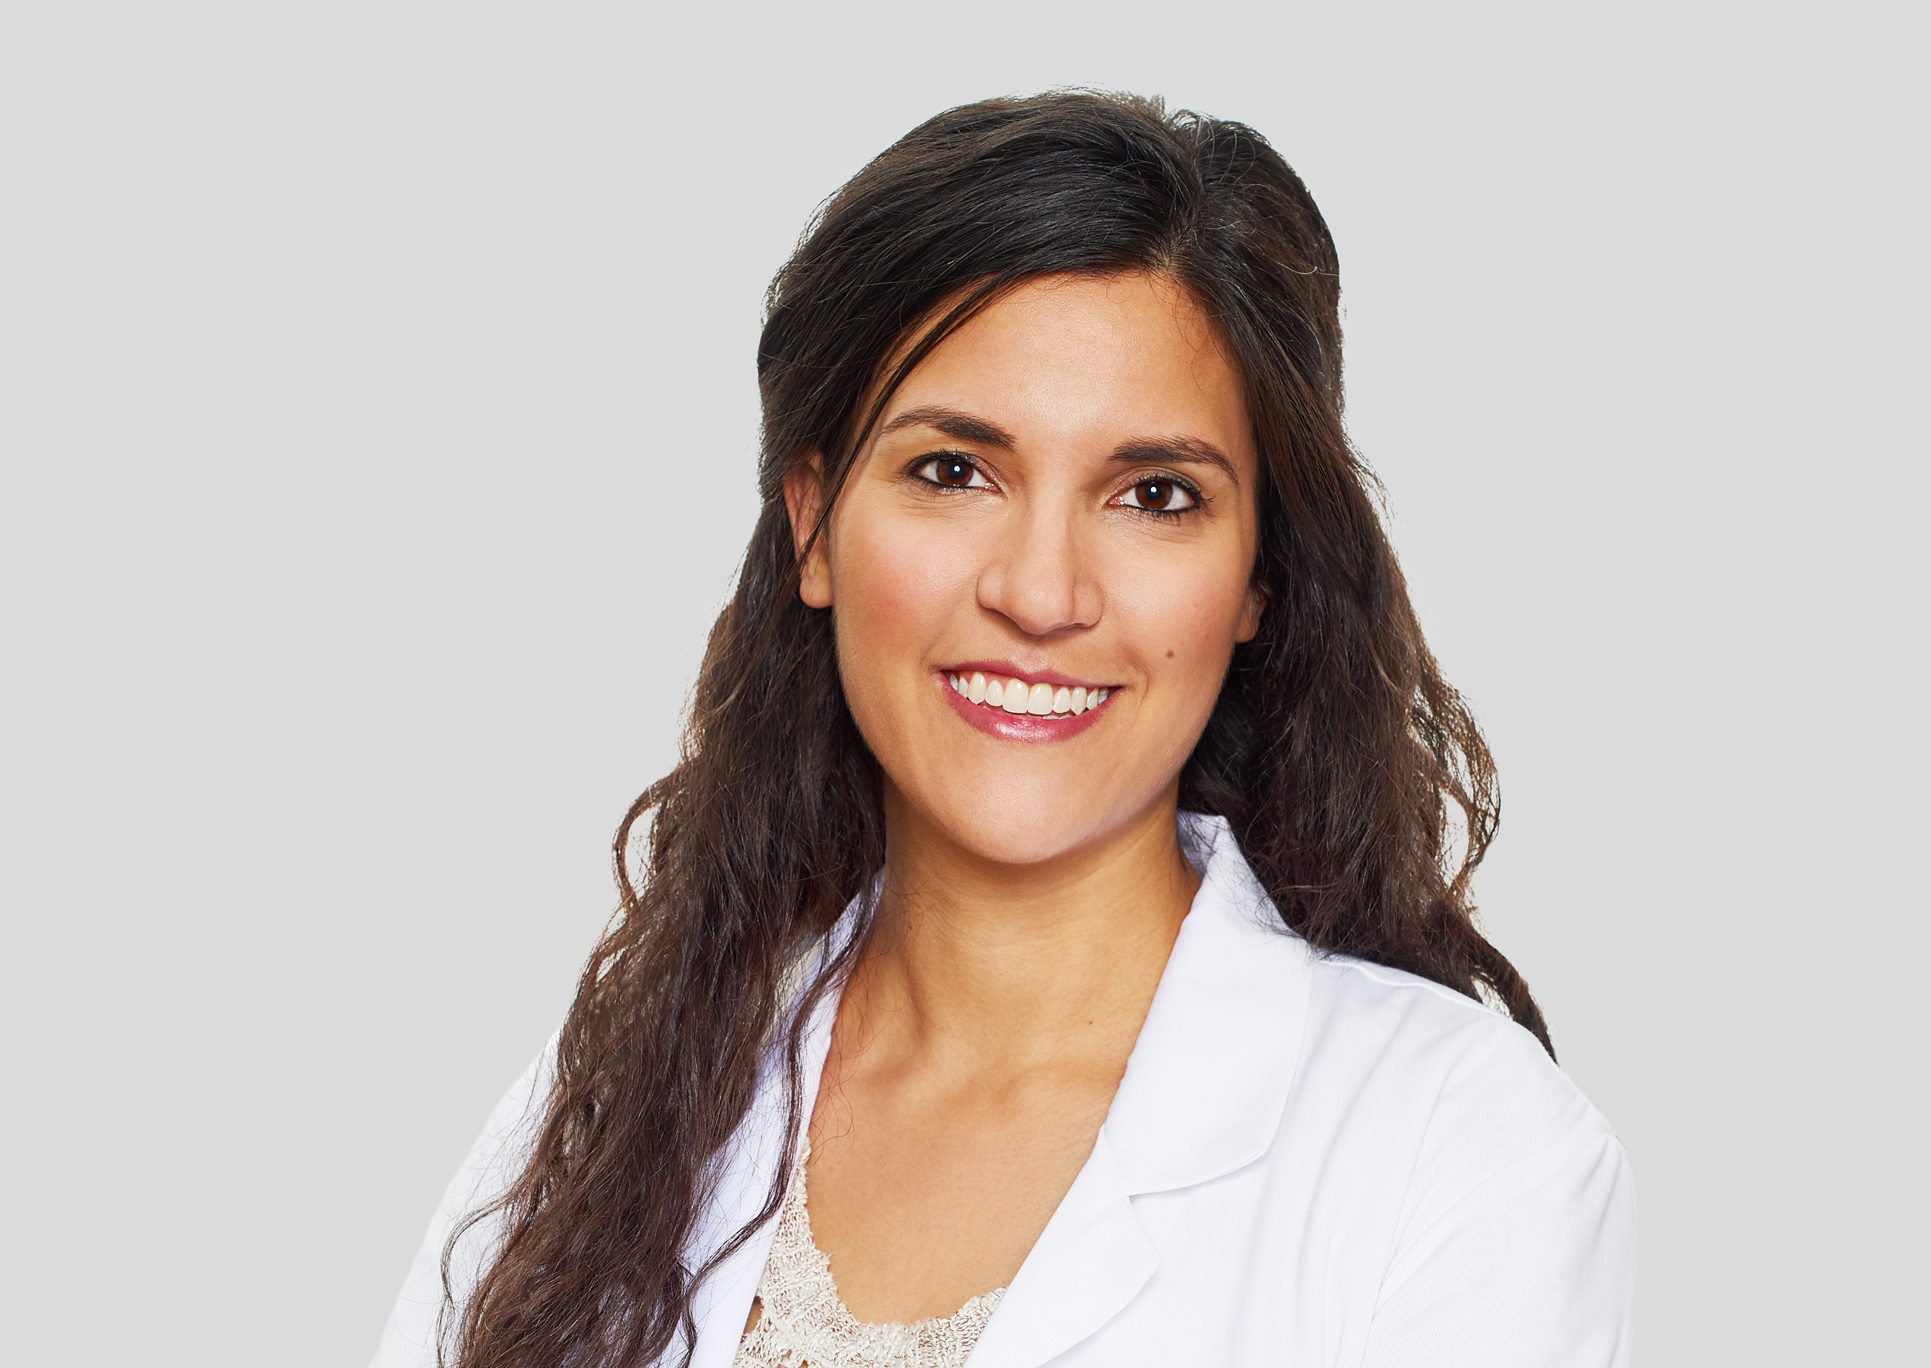 Dr. Rima Kharbush of the Animal Medical Center in New York City